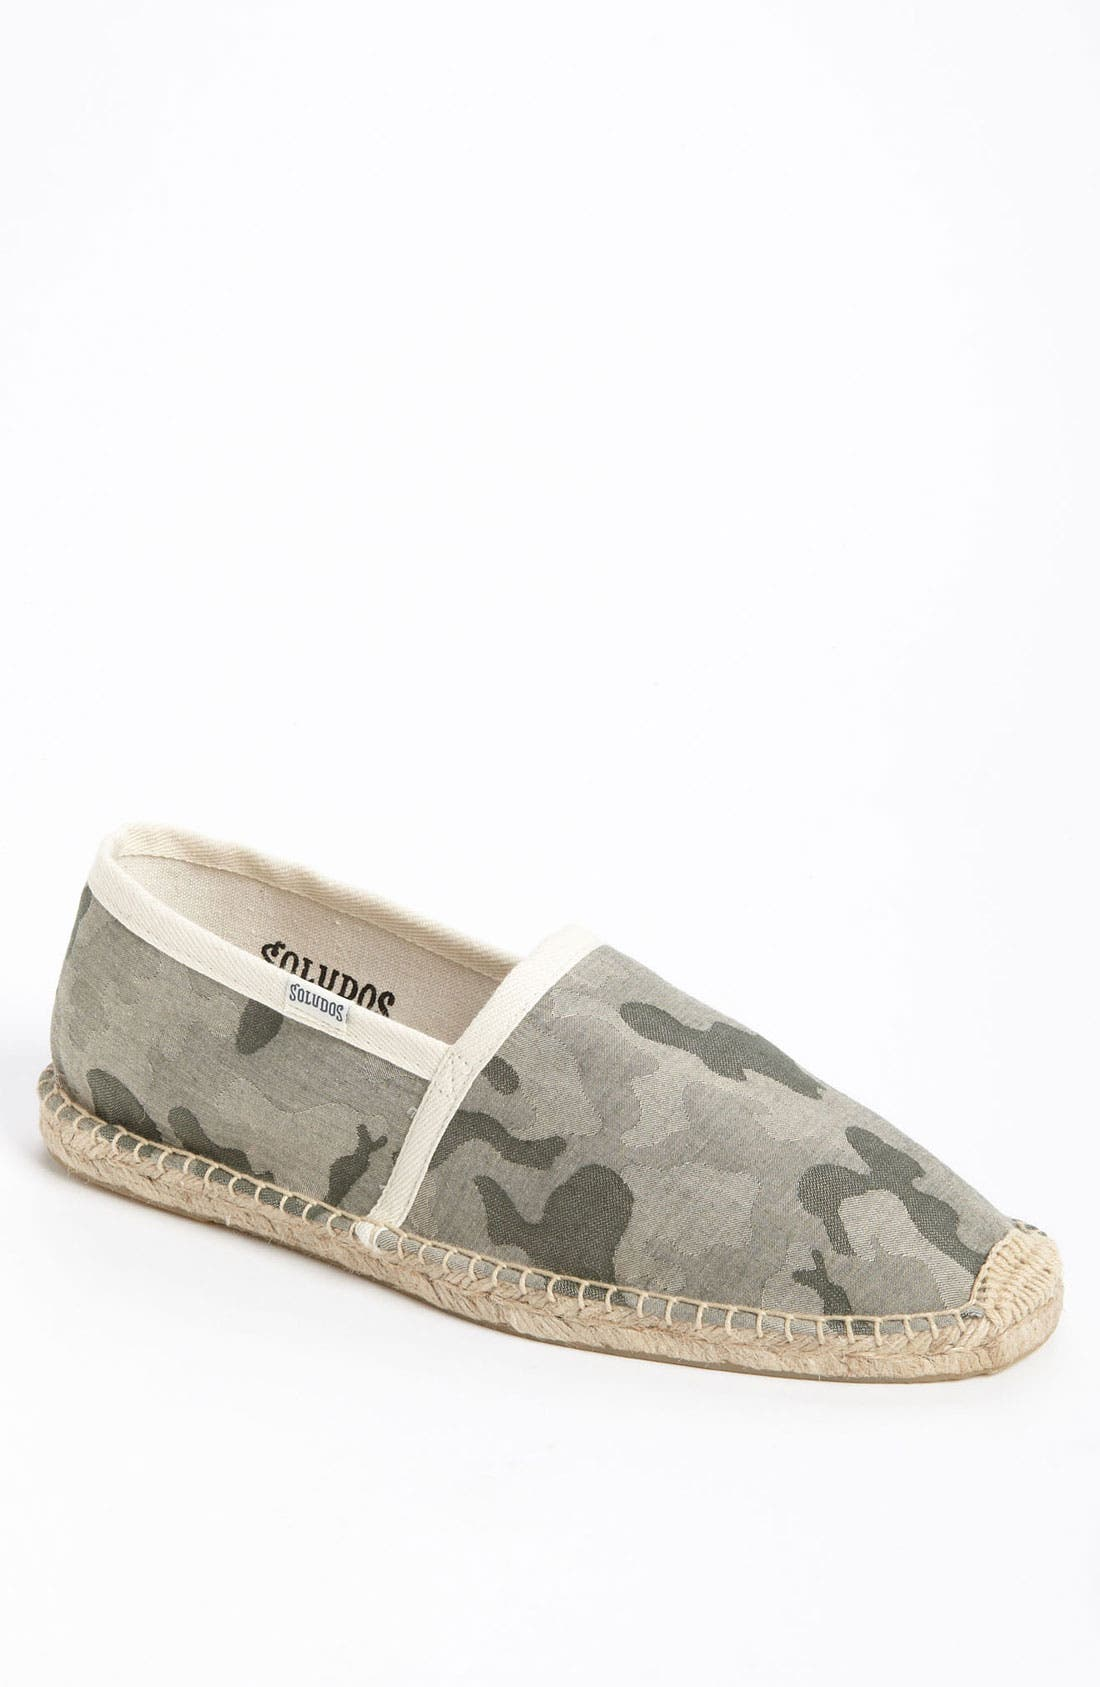 Alternate Image 1 Selected - Soludos Camo Espadrille Slip-On (Men)